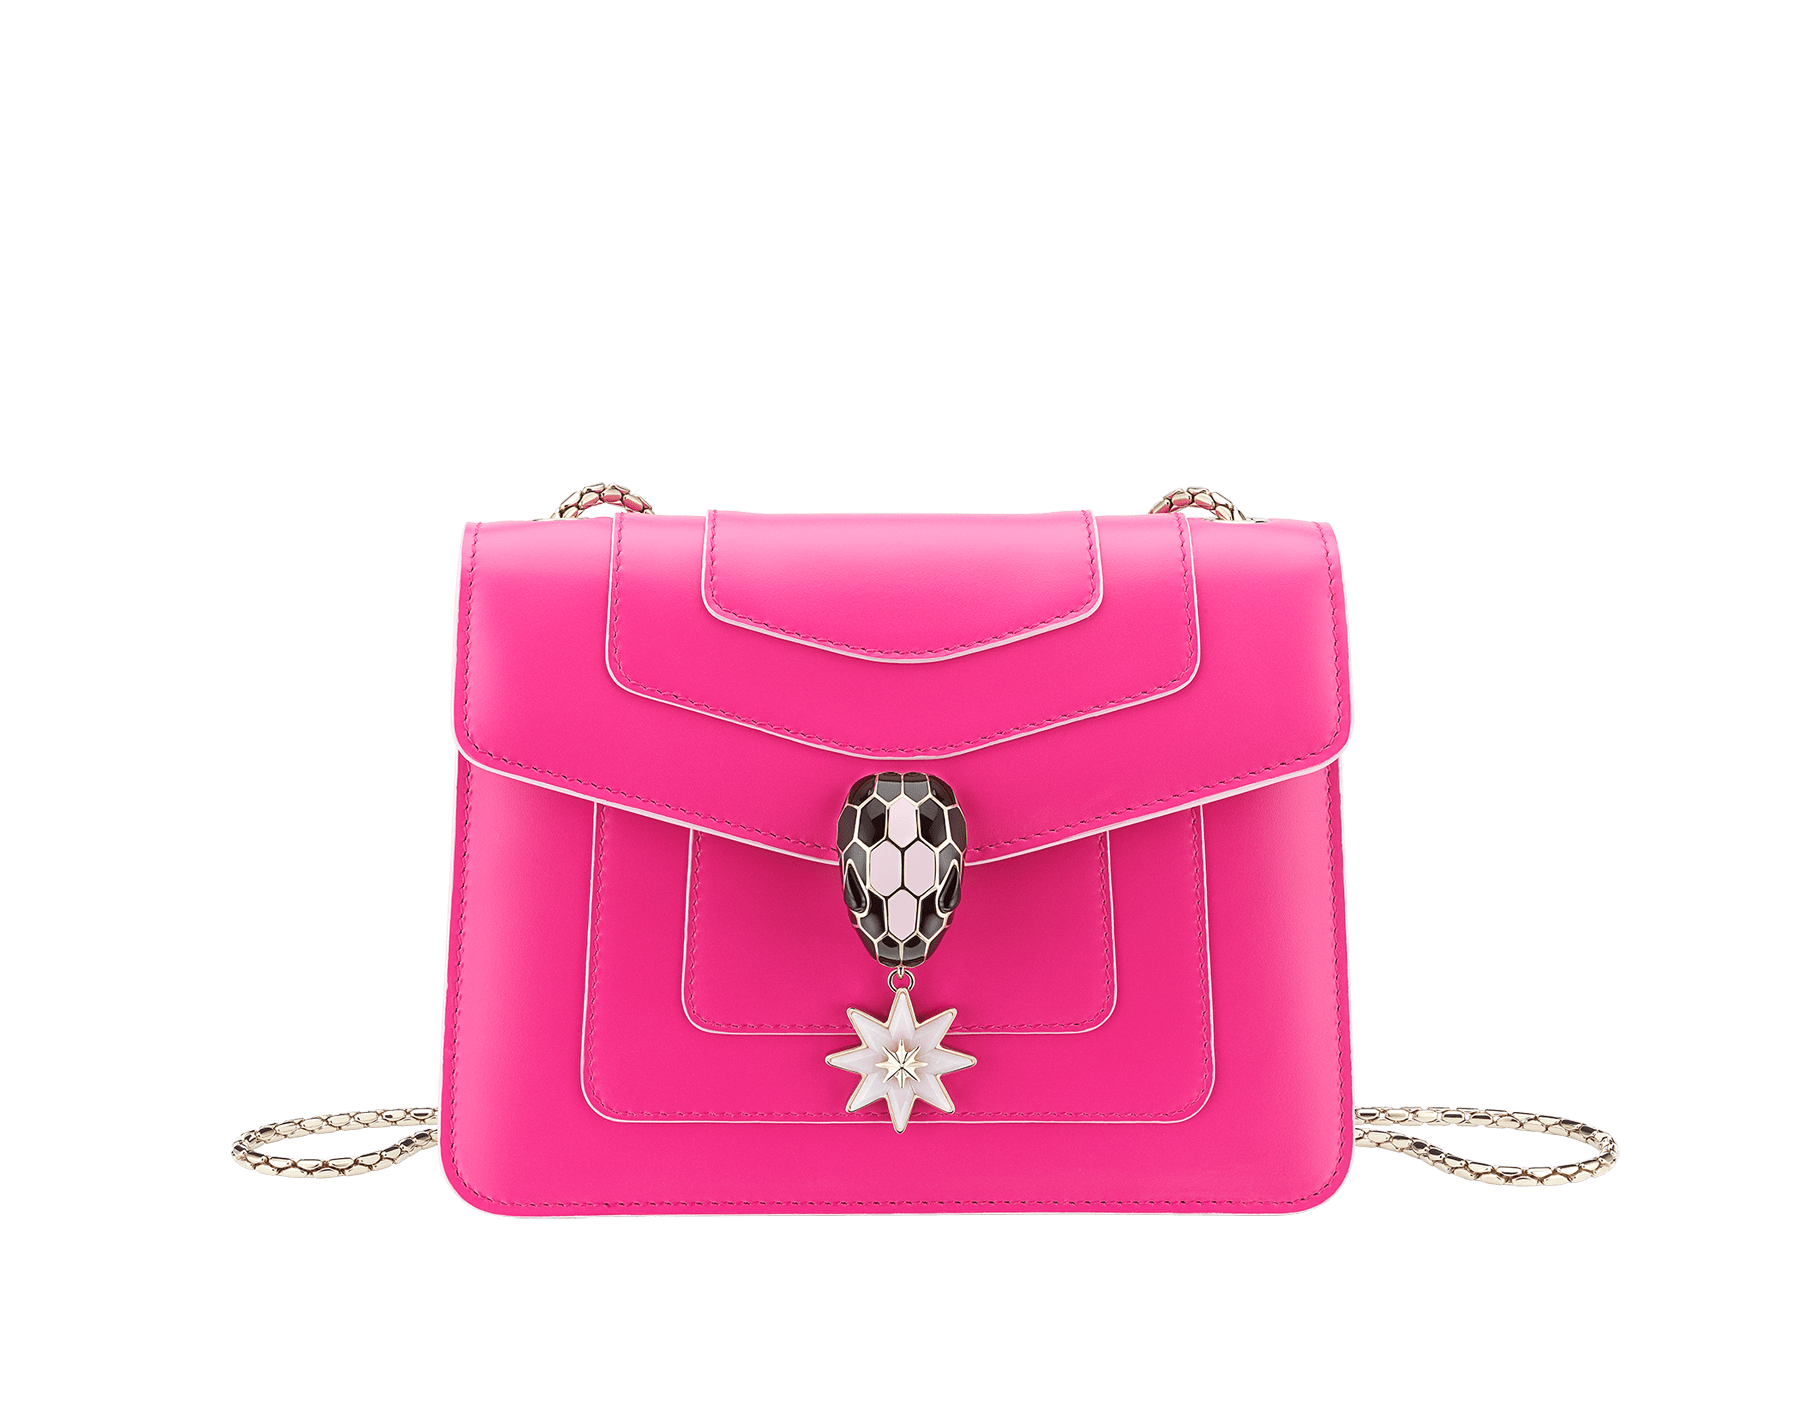 Serpenti Forever Holiday Season crossbody bag in flash amethyst calf leather and rose quartz brushed metallic calf leather. Snakehead closure in light gold plated brass embellished with black and sakura pink enamel, black onyx eyes and a pink opal eight-pointed star charm. 289367 image 1